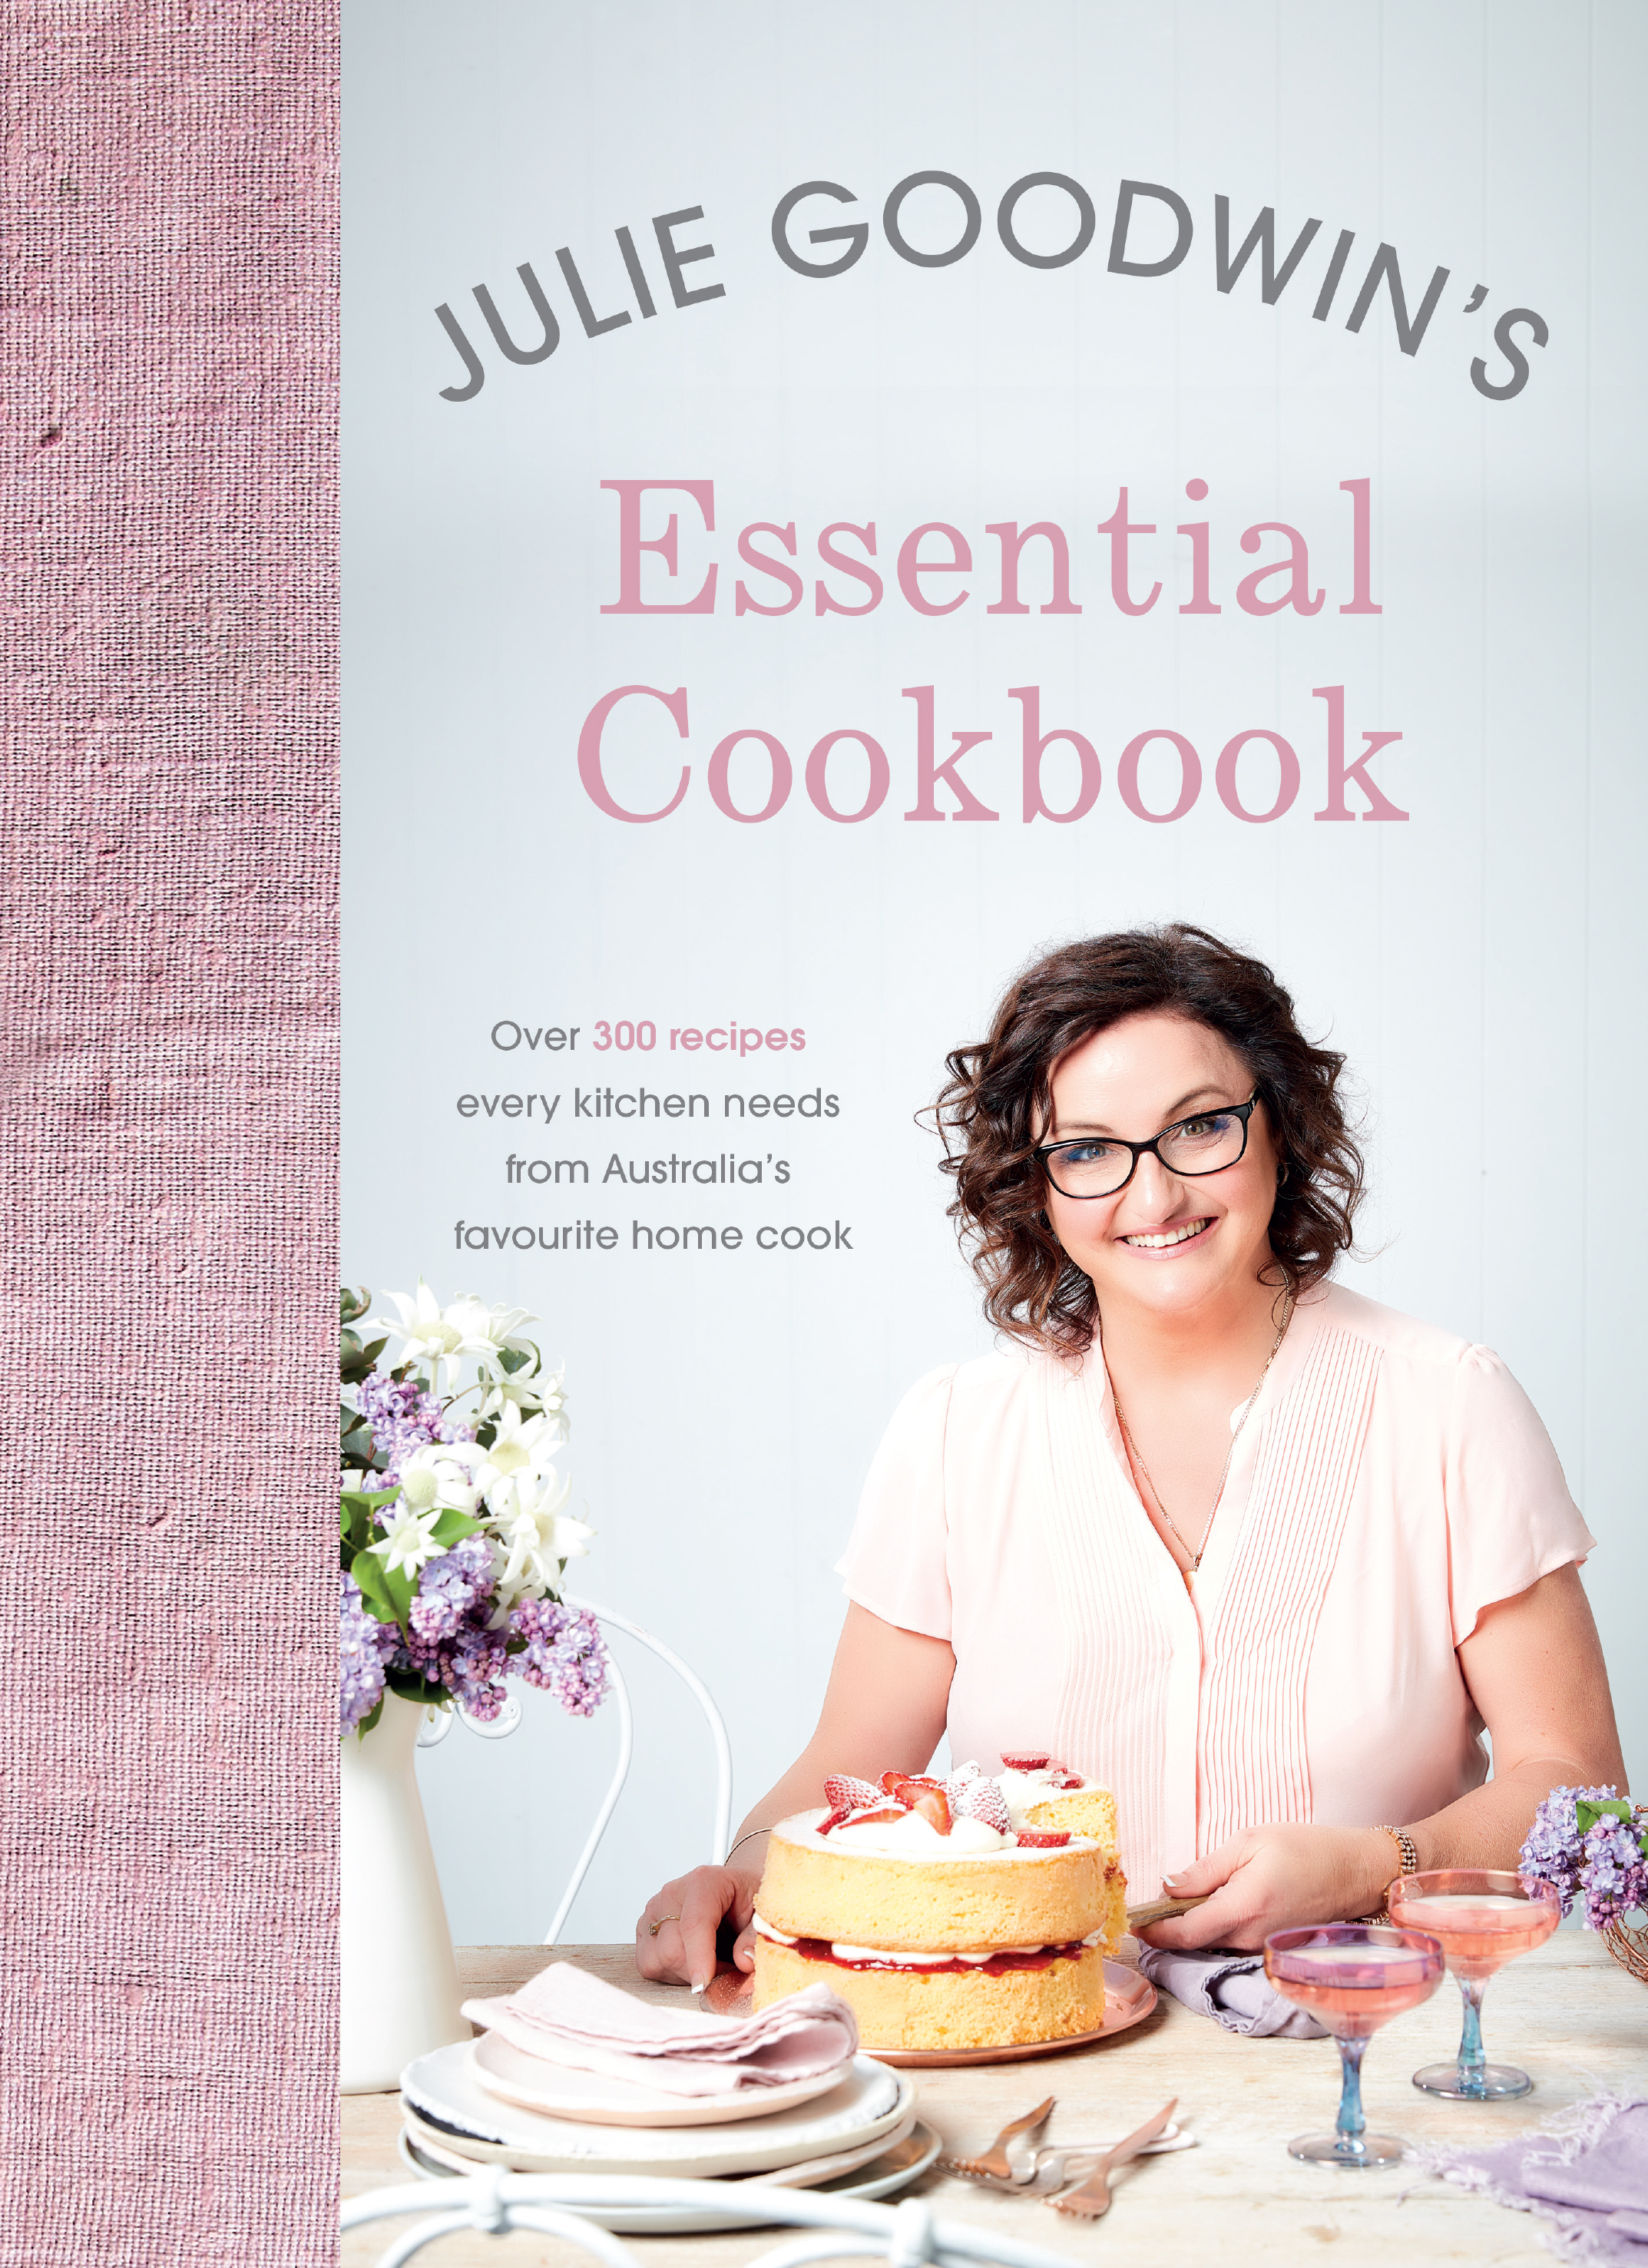 Julie Goodwin's Essential Cooking